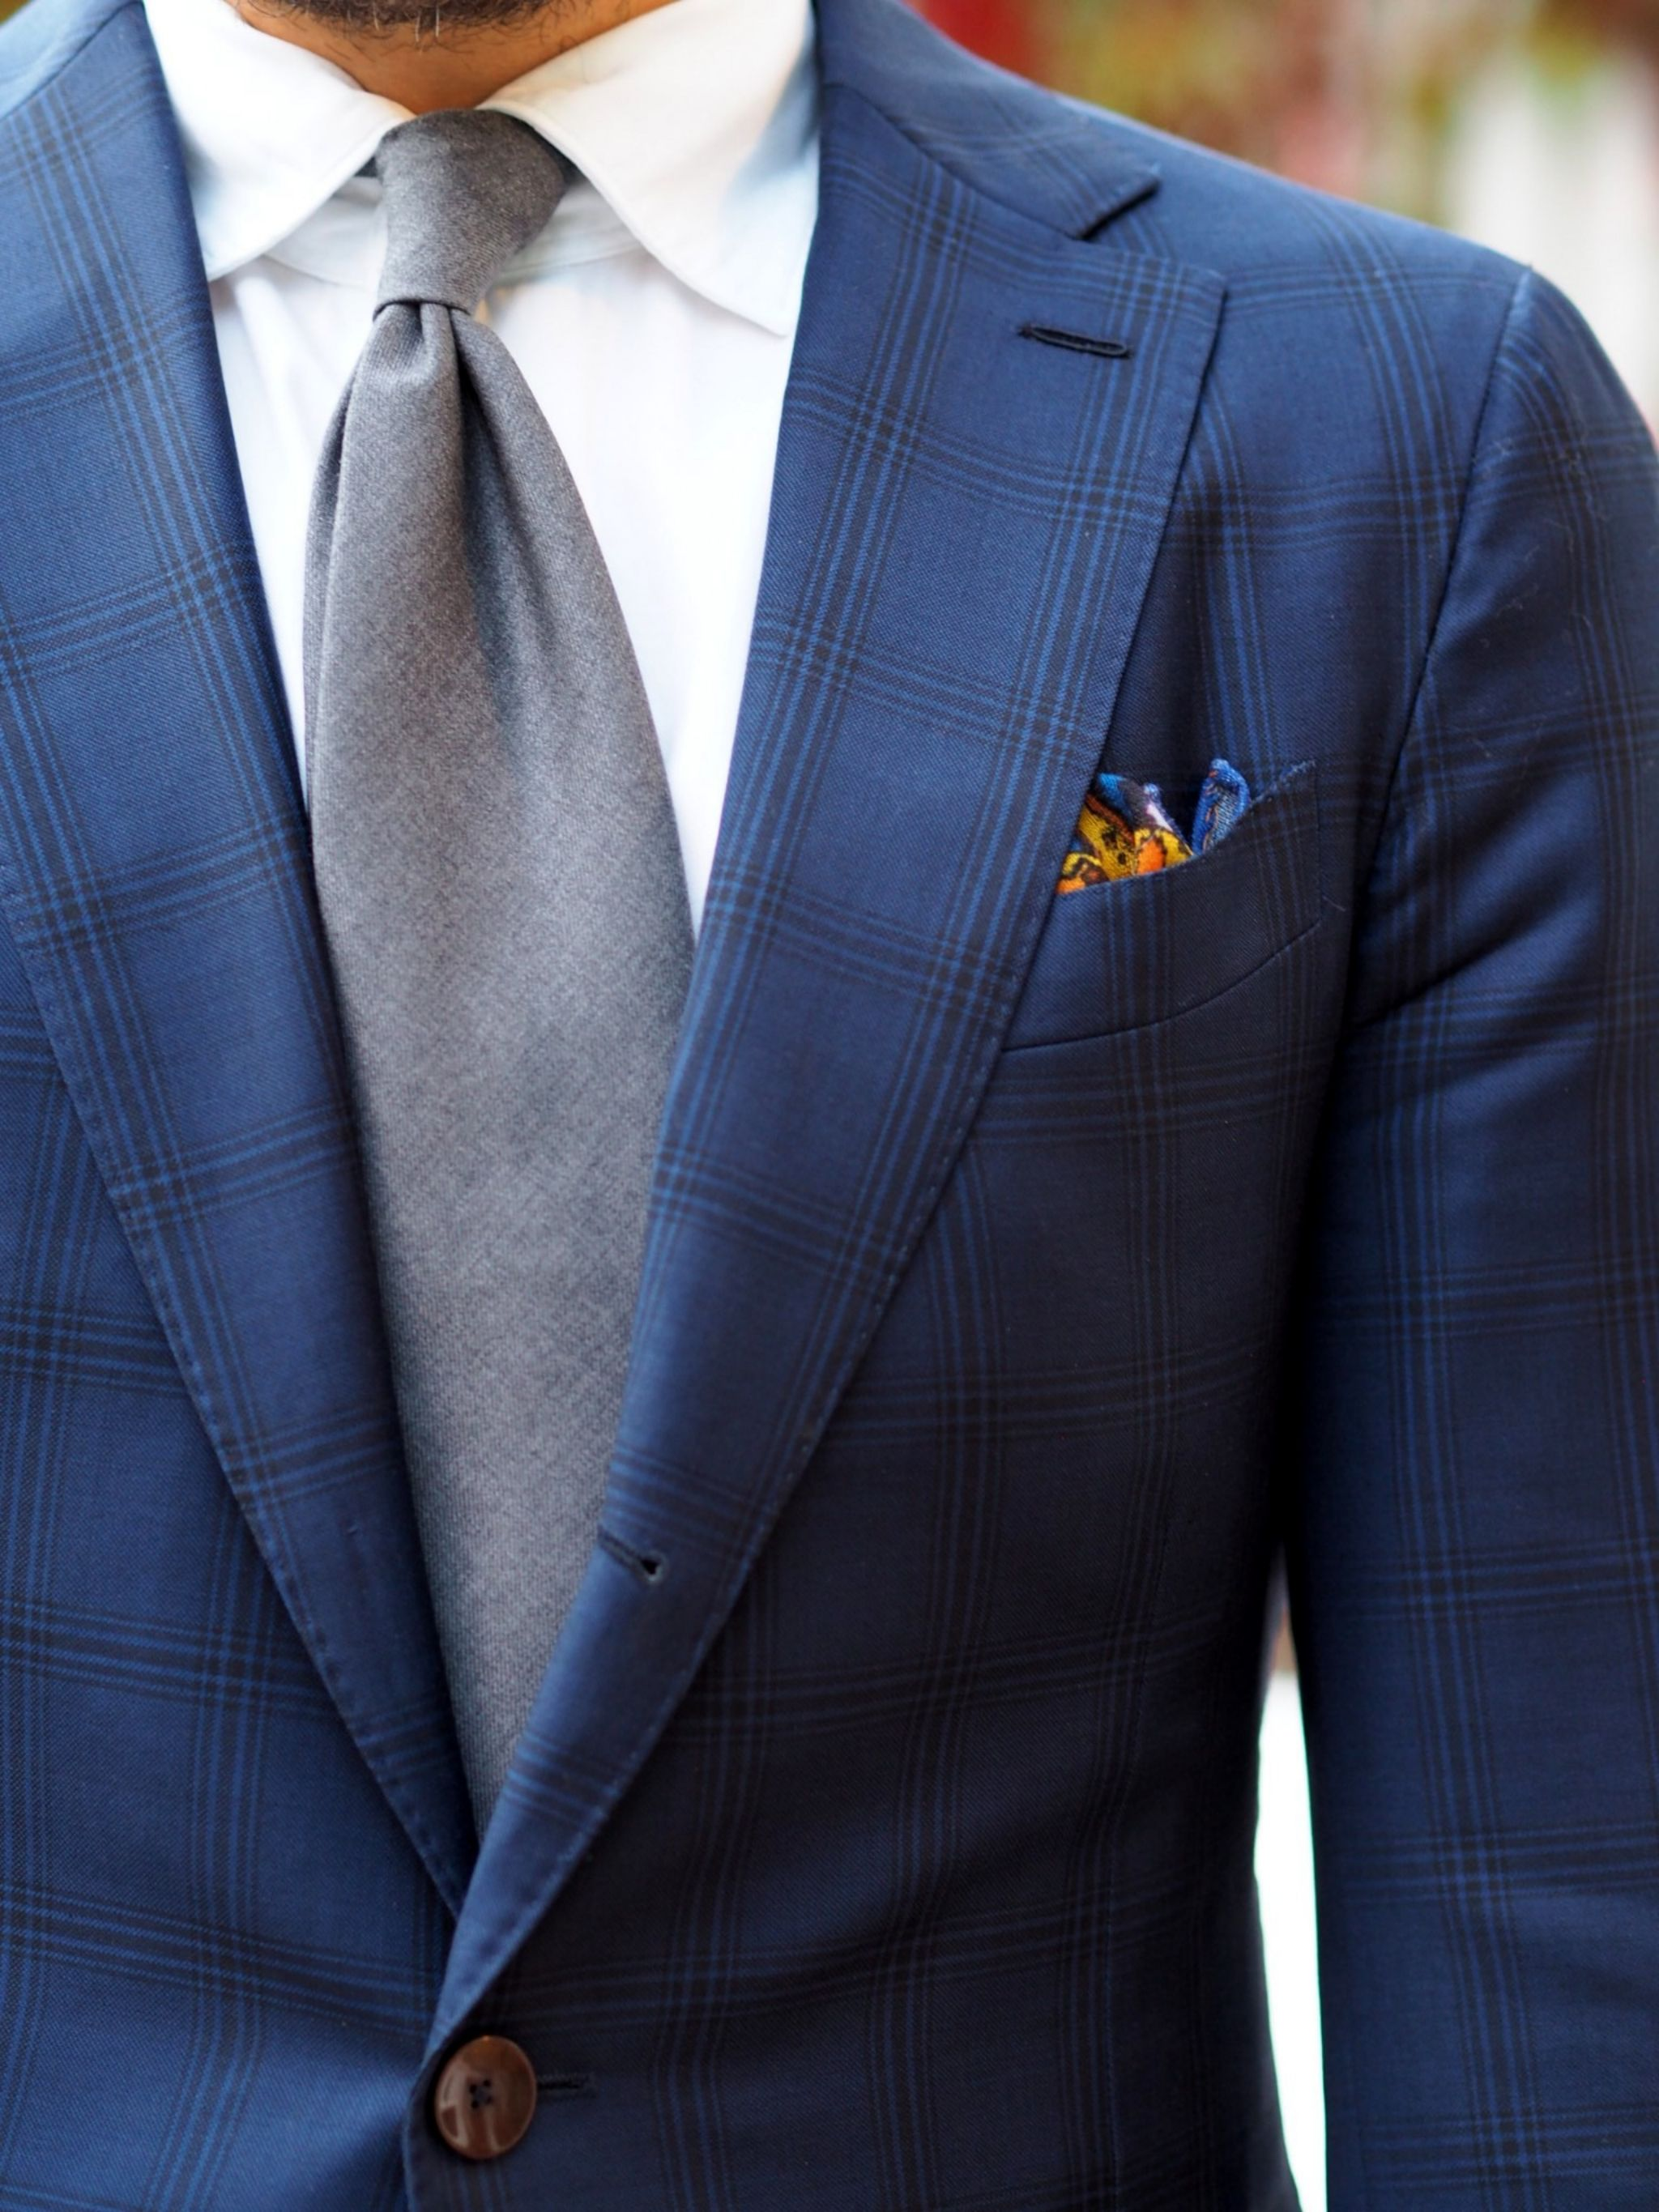 Autumnal business outfits - Gray wool tie with blue checked suit